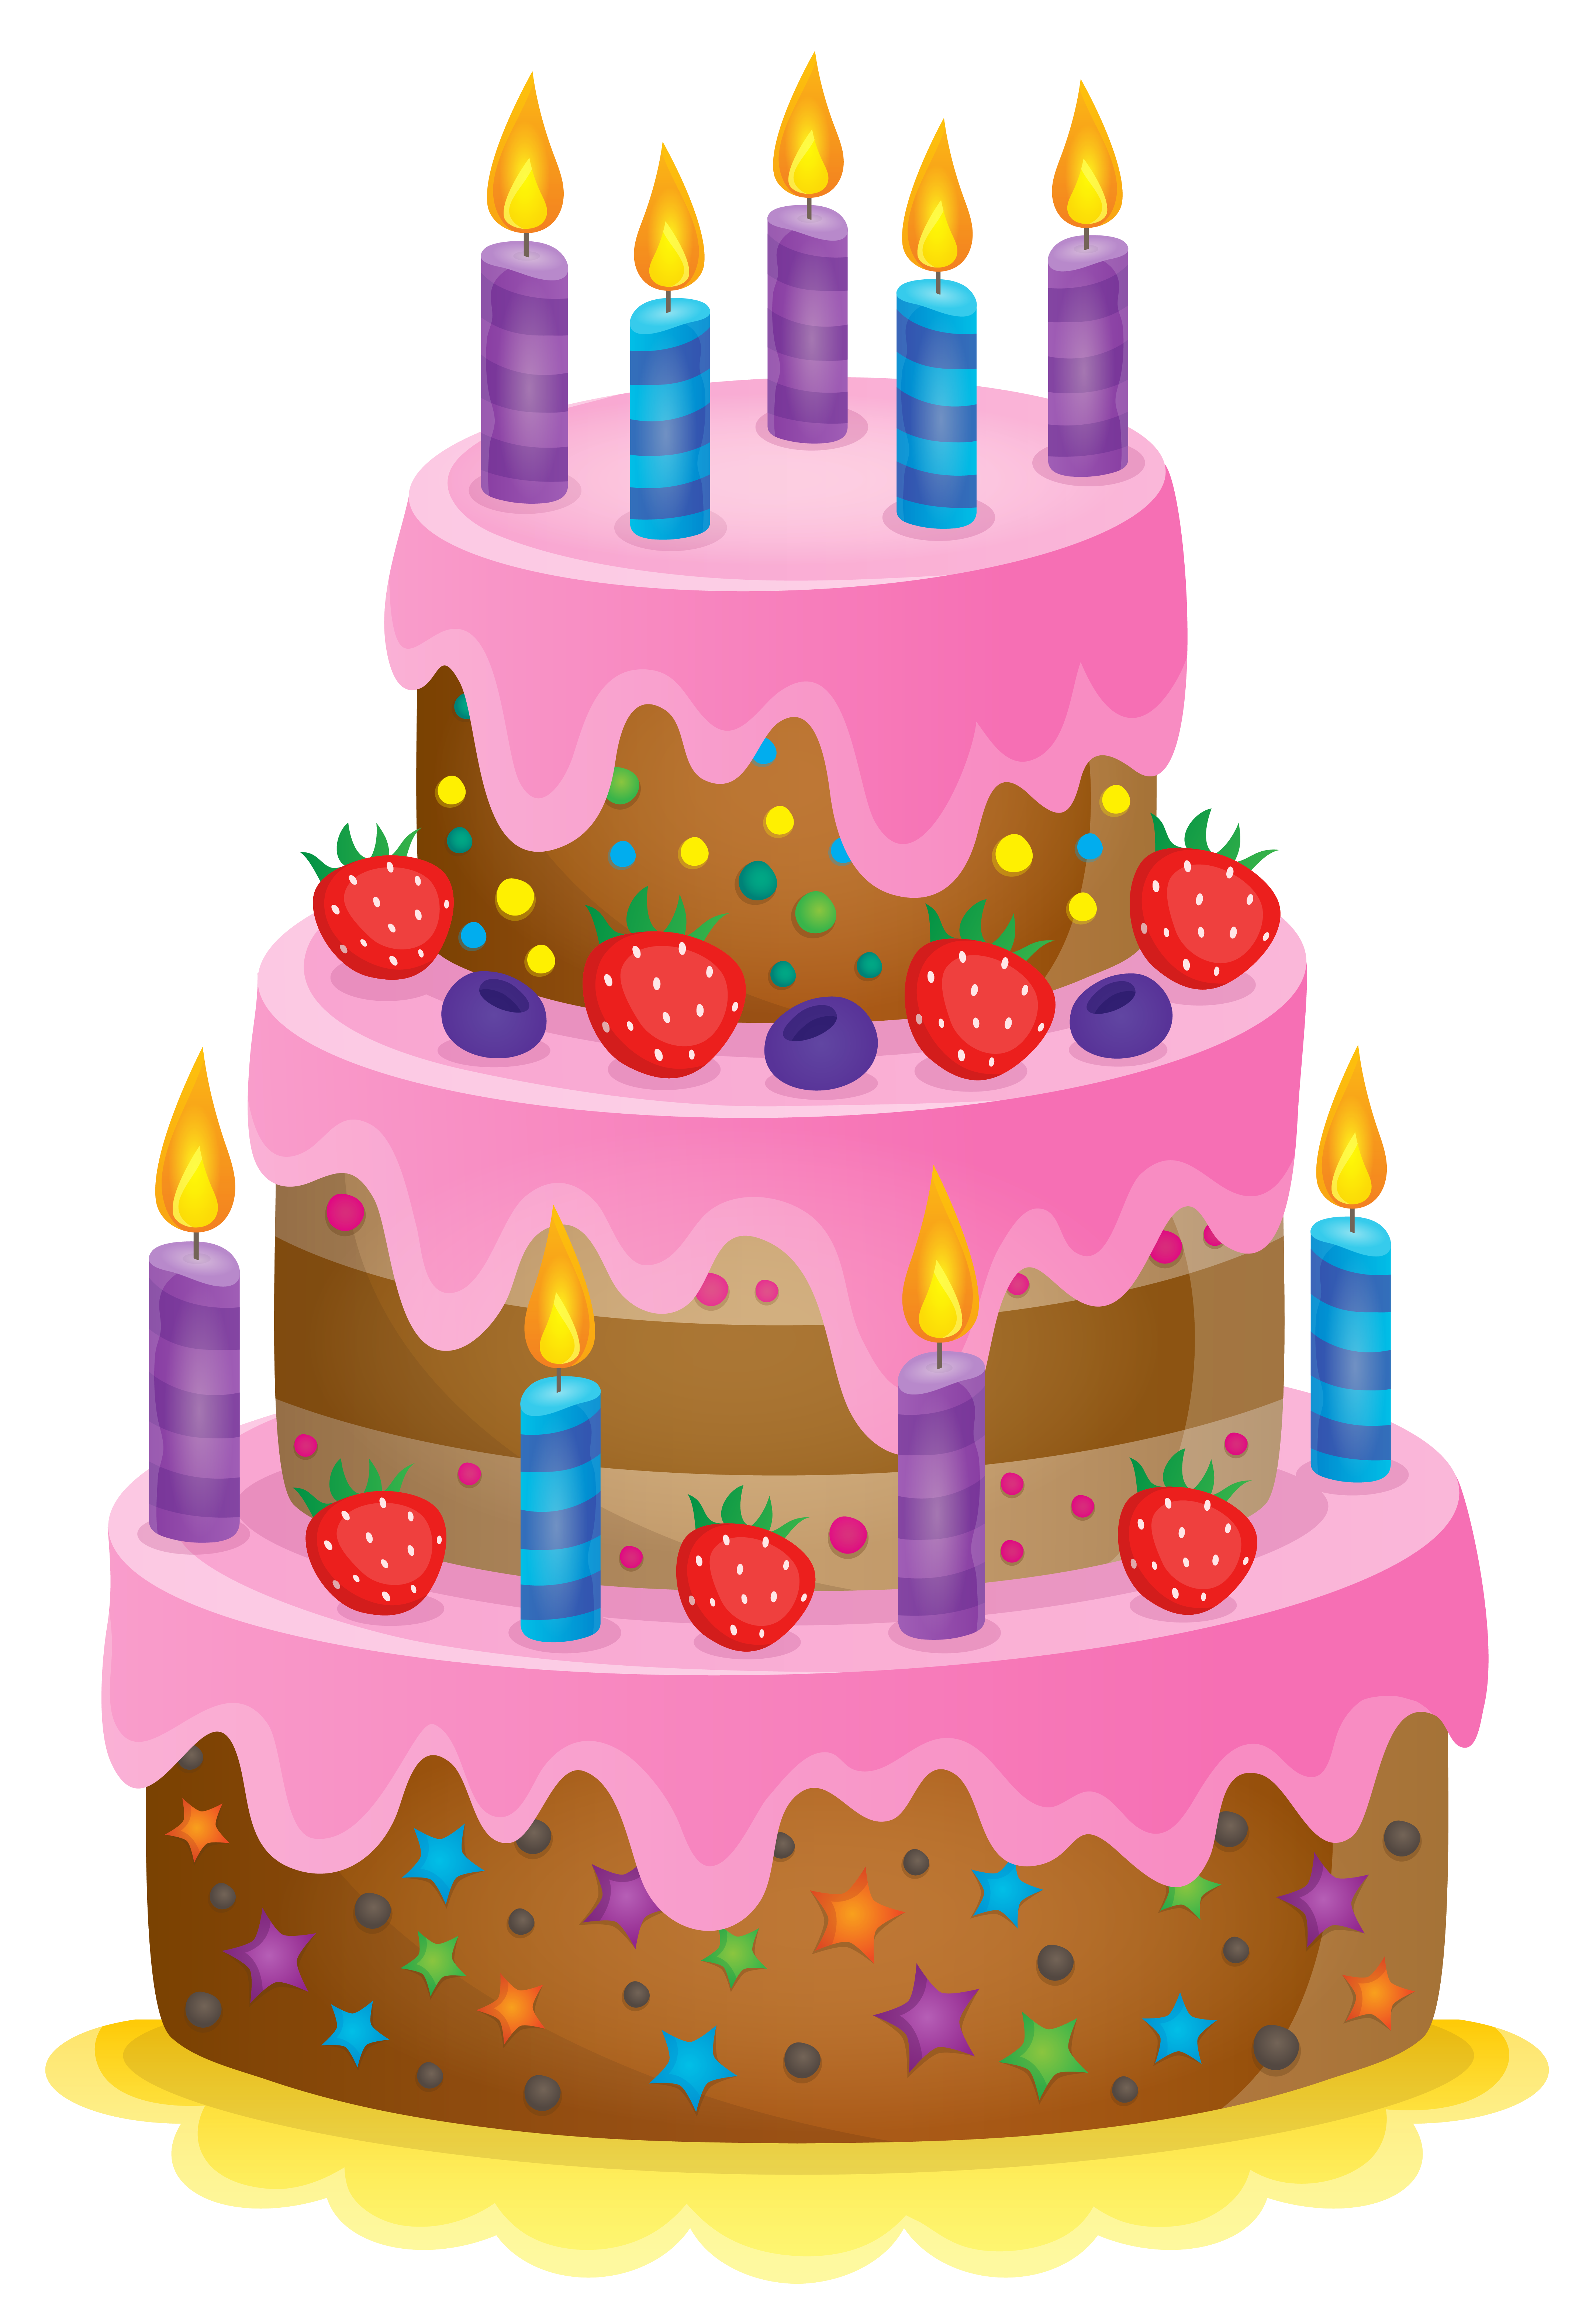 4307x6298 Collection Of Cake Clipart Png High Quality, Free Cliparts